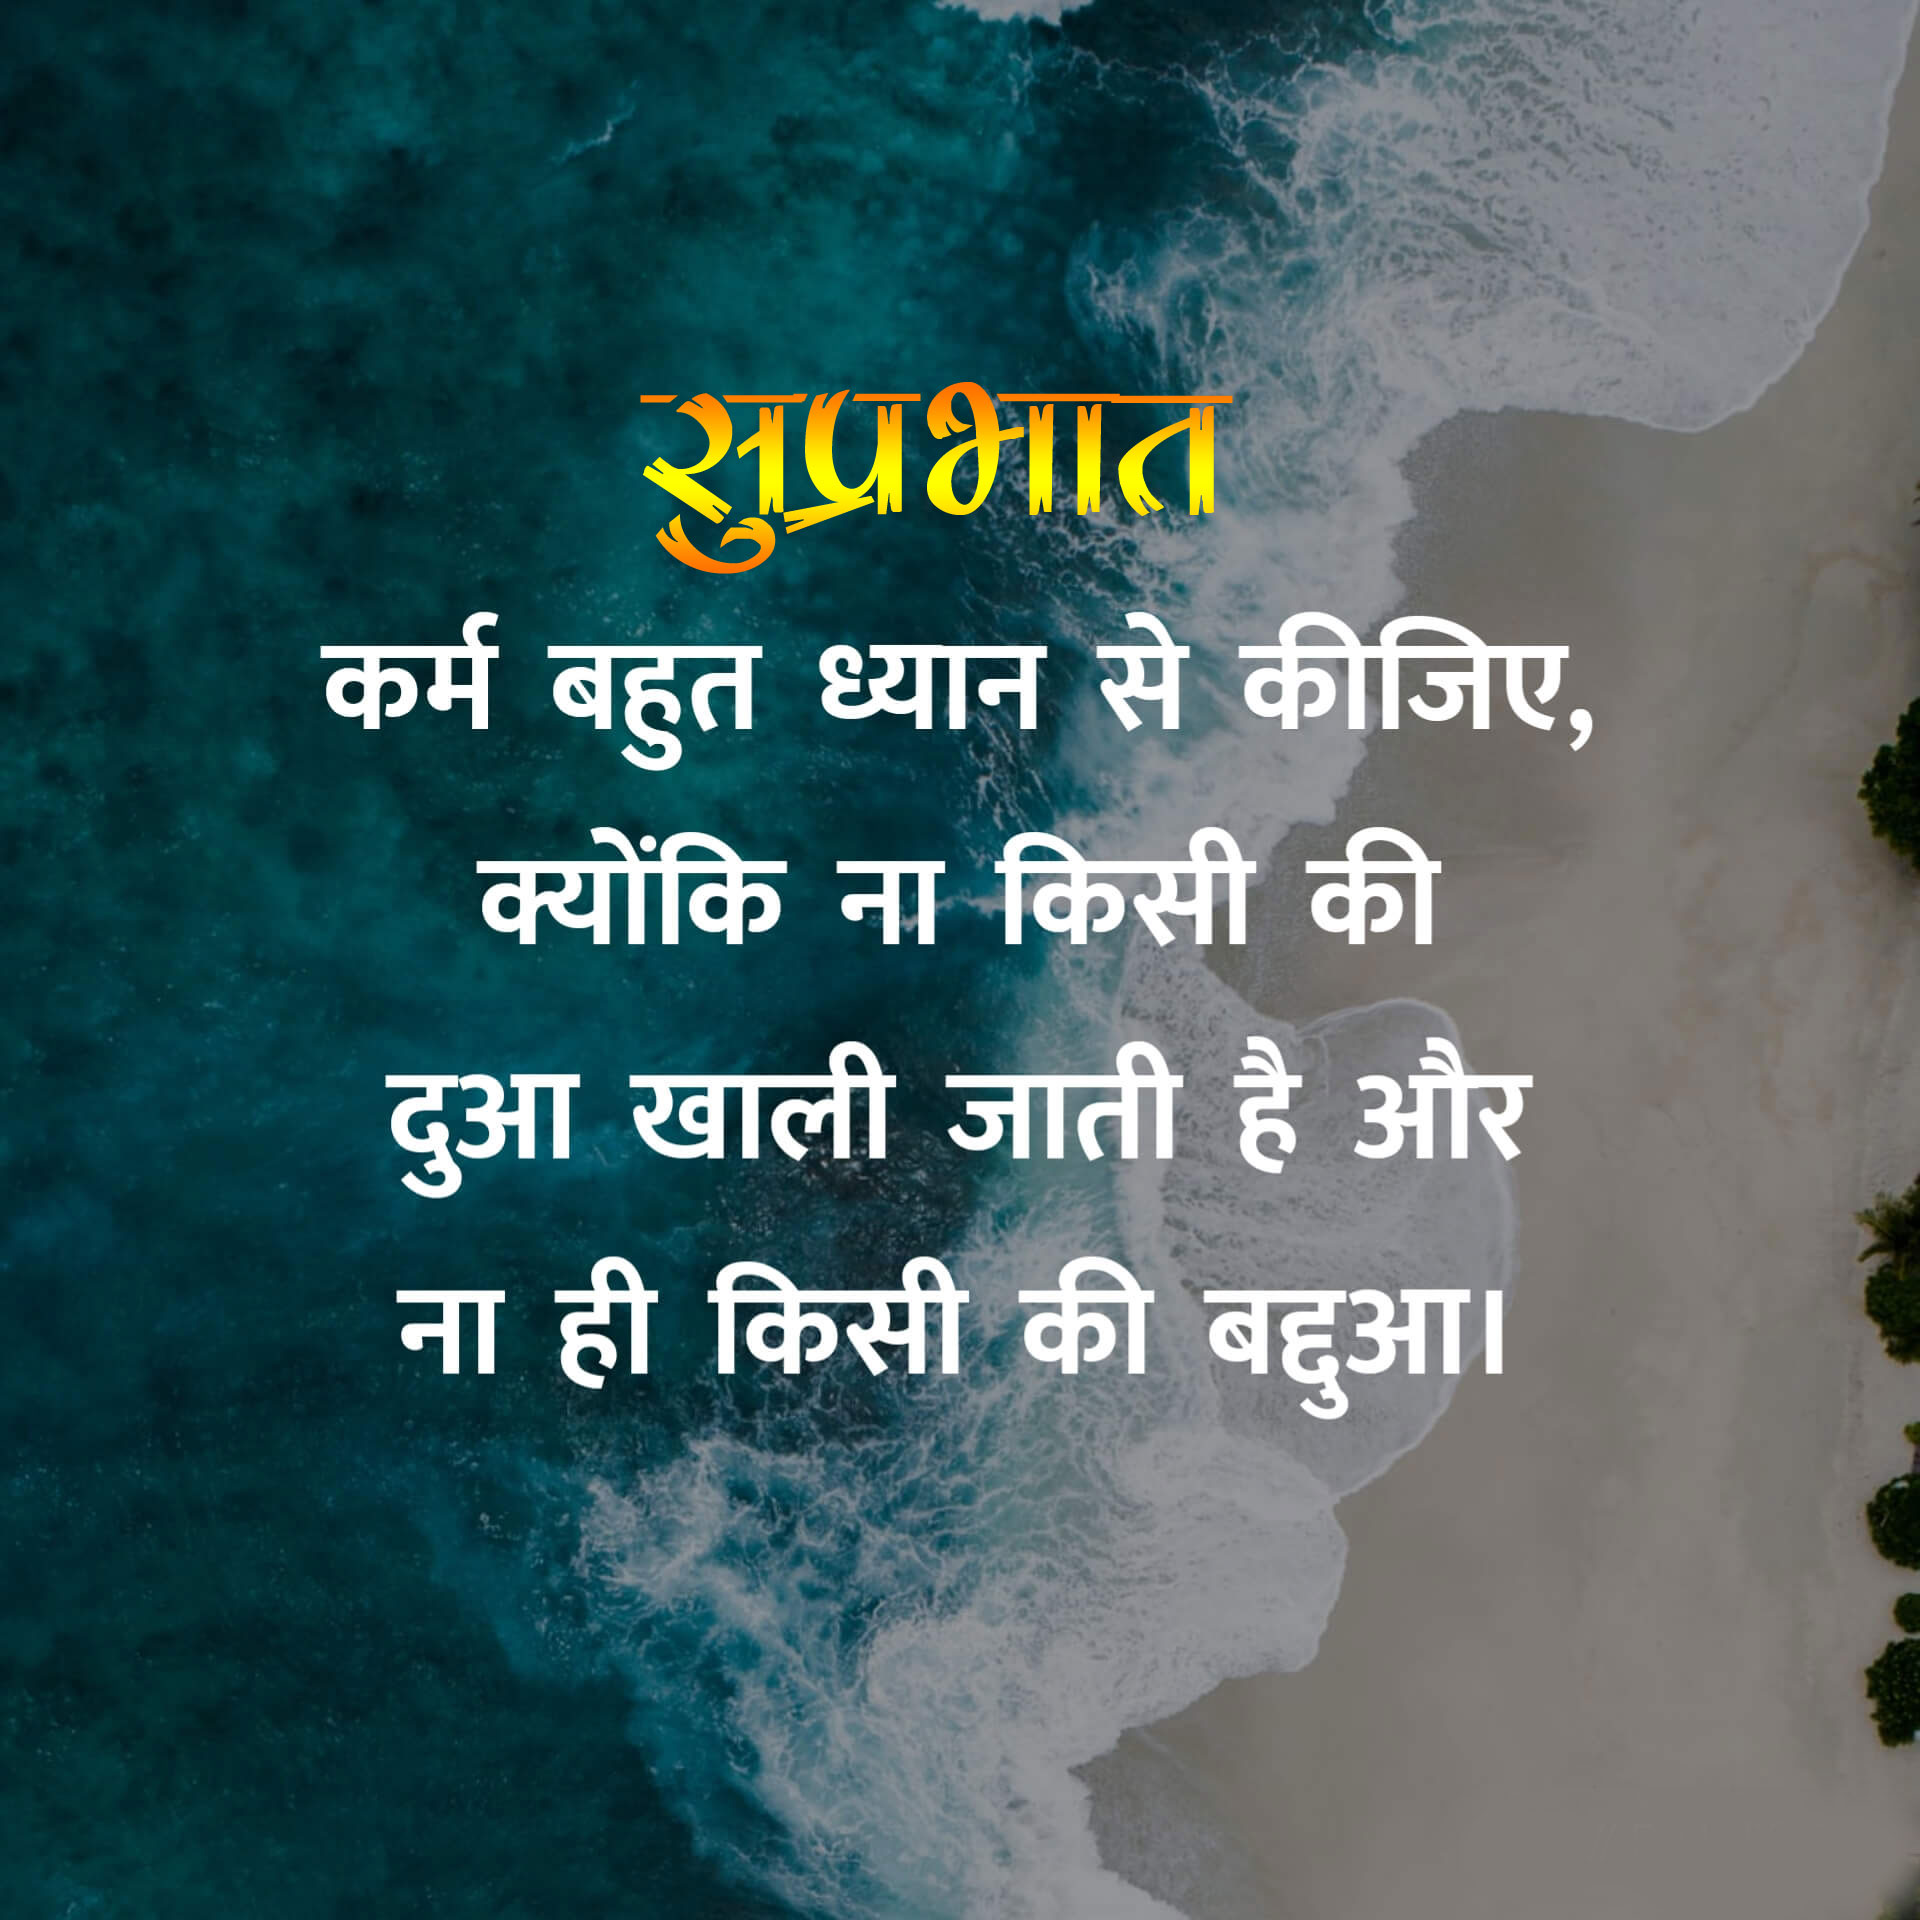 Latest Suprabhat Images for whatsapp